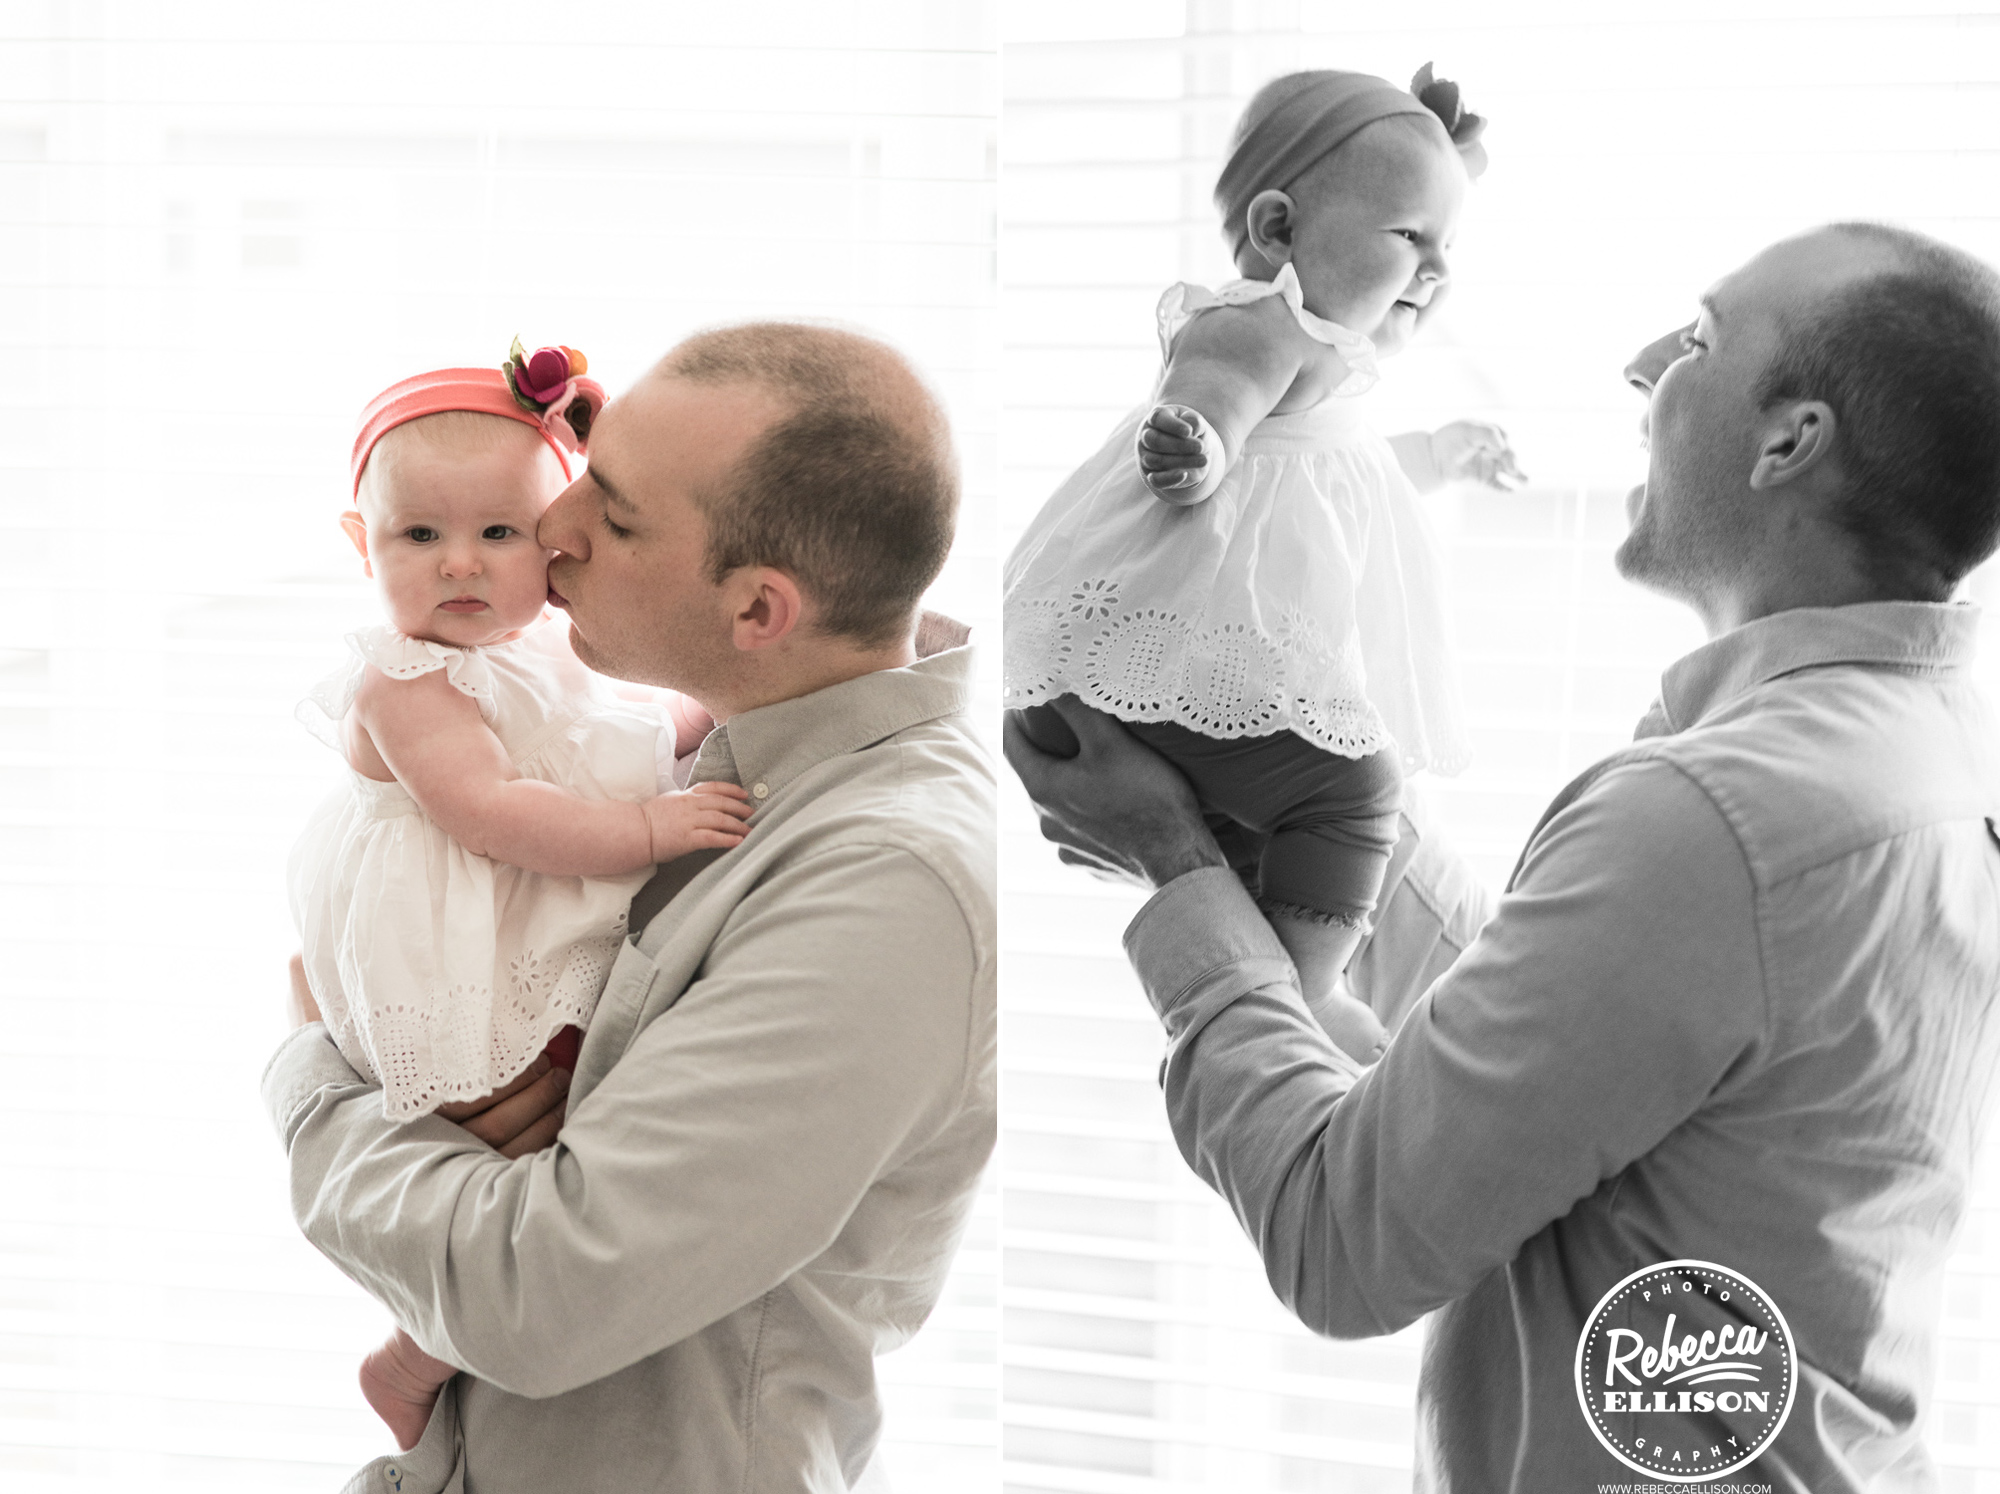 A father and his baby during an in home portrait session photographed by Rebecca Ellison Photography